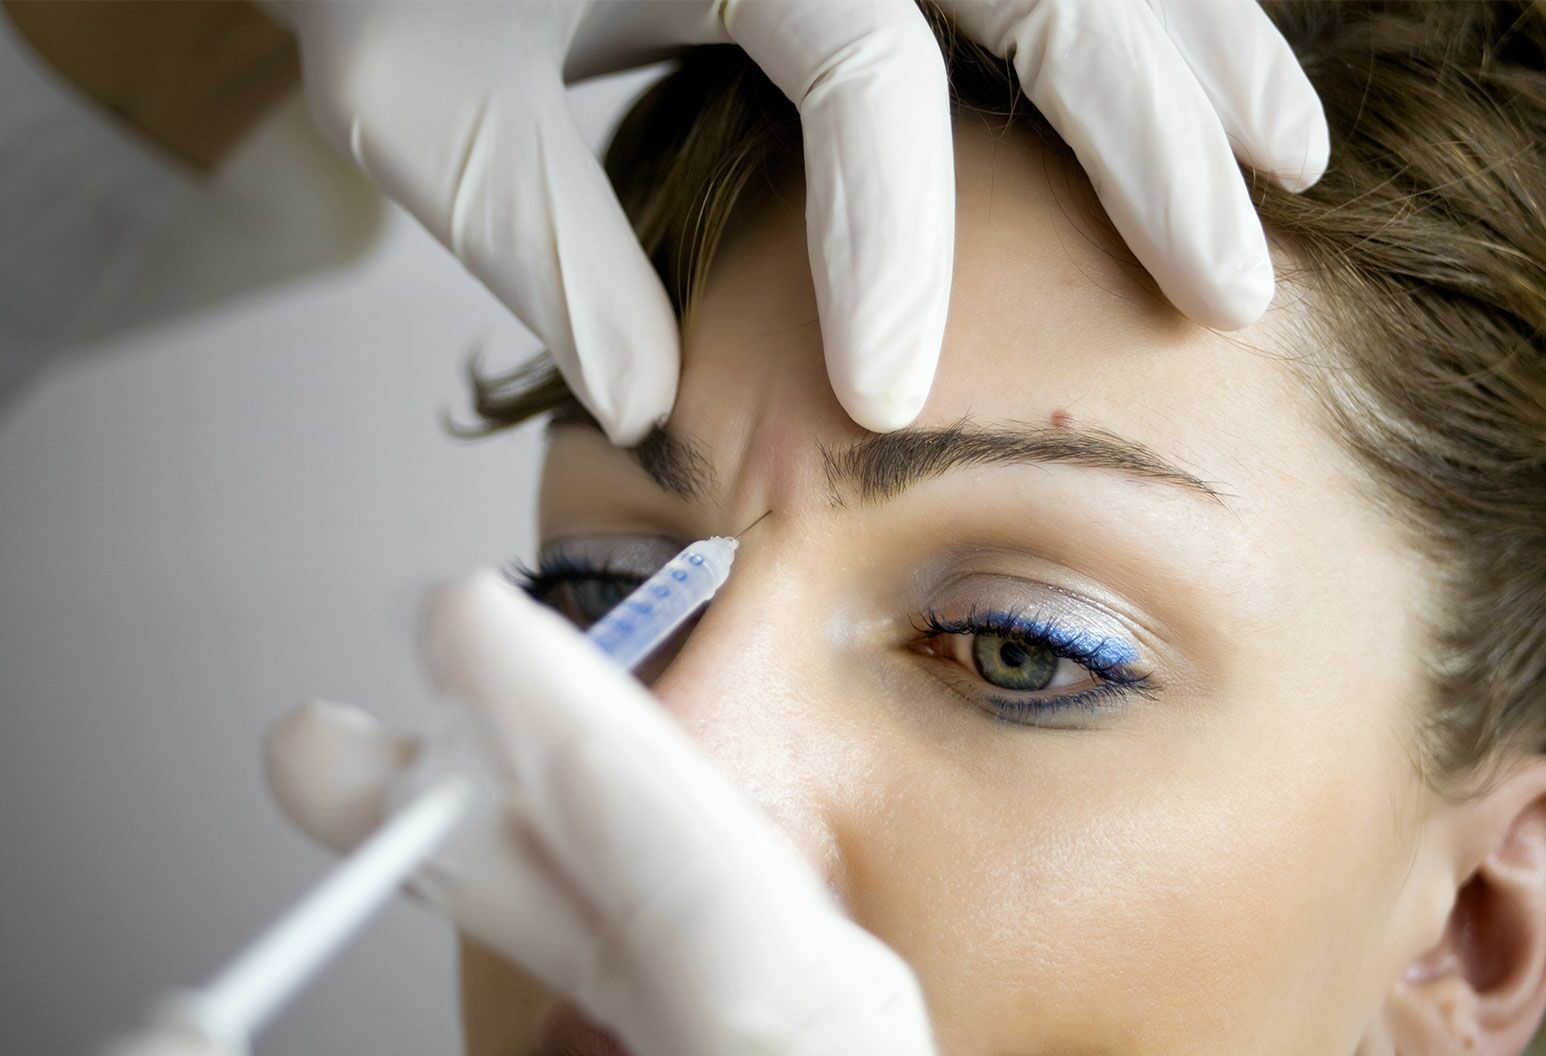 A woman having Botox injections